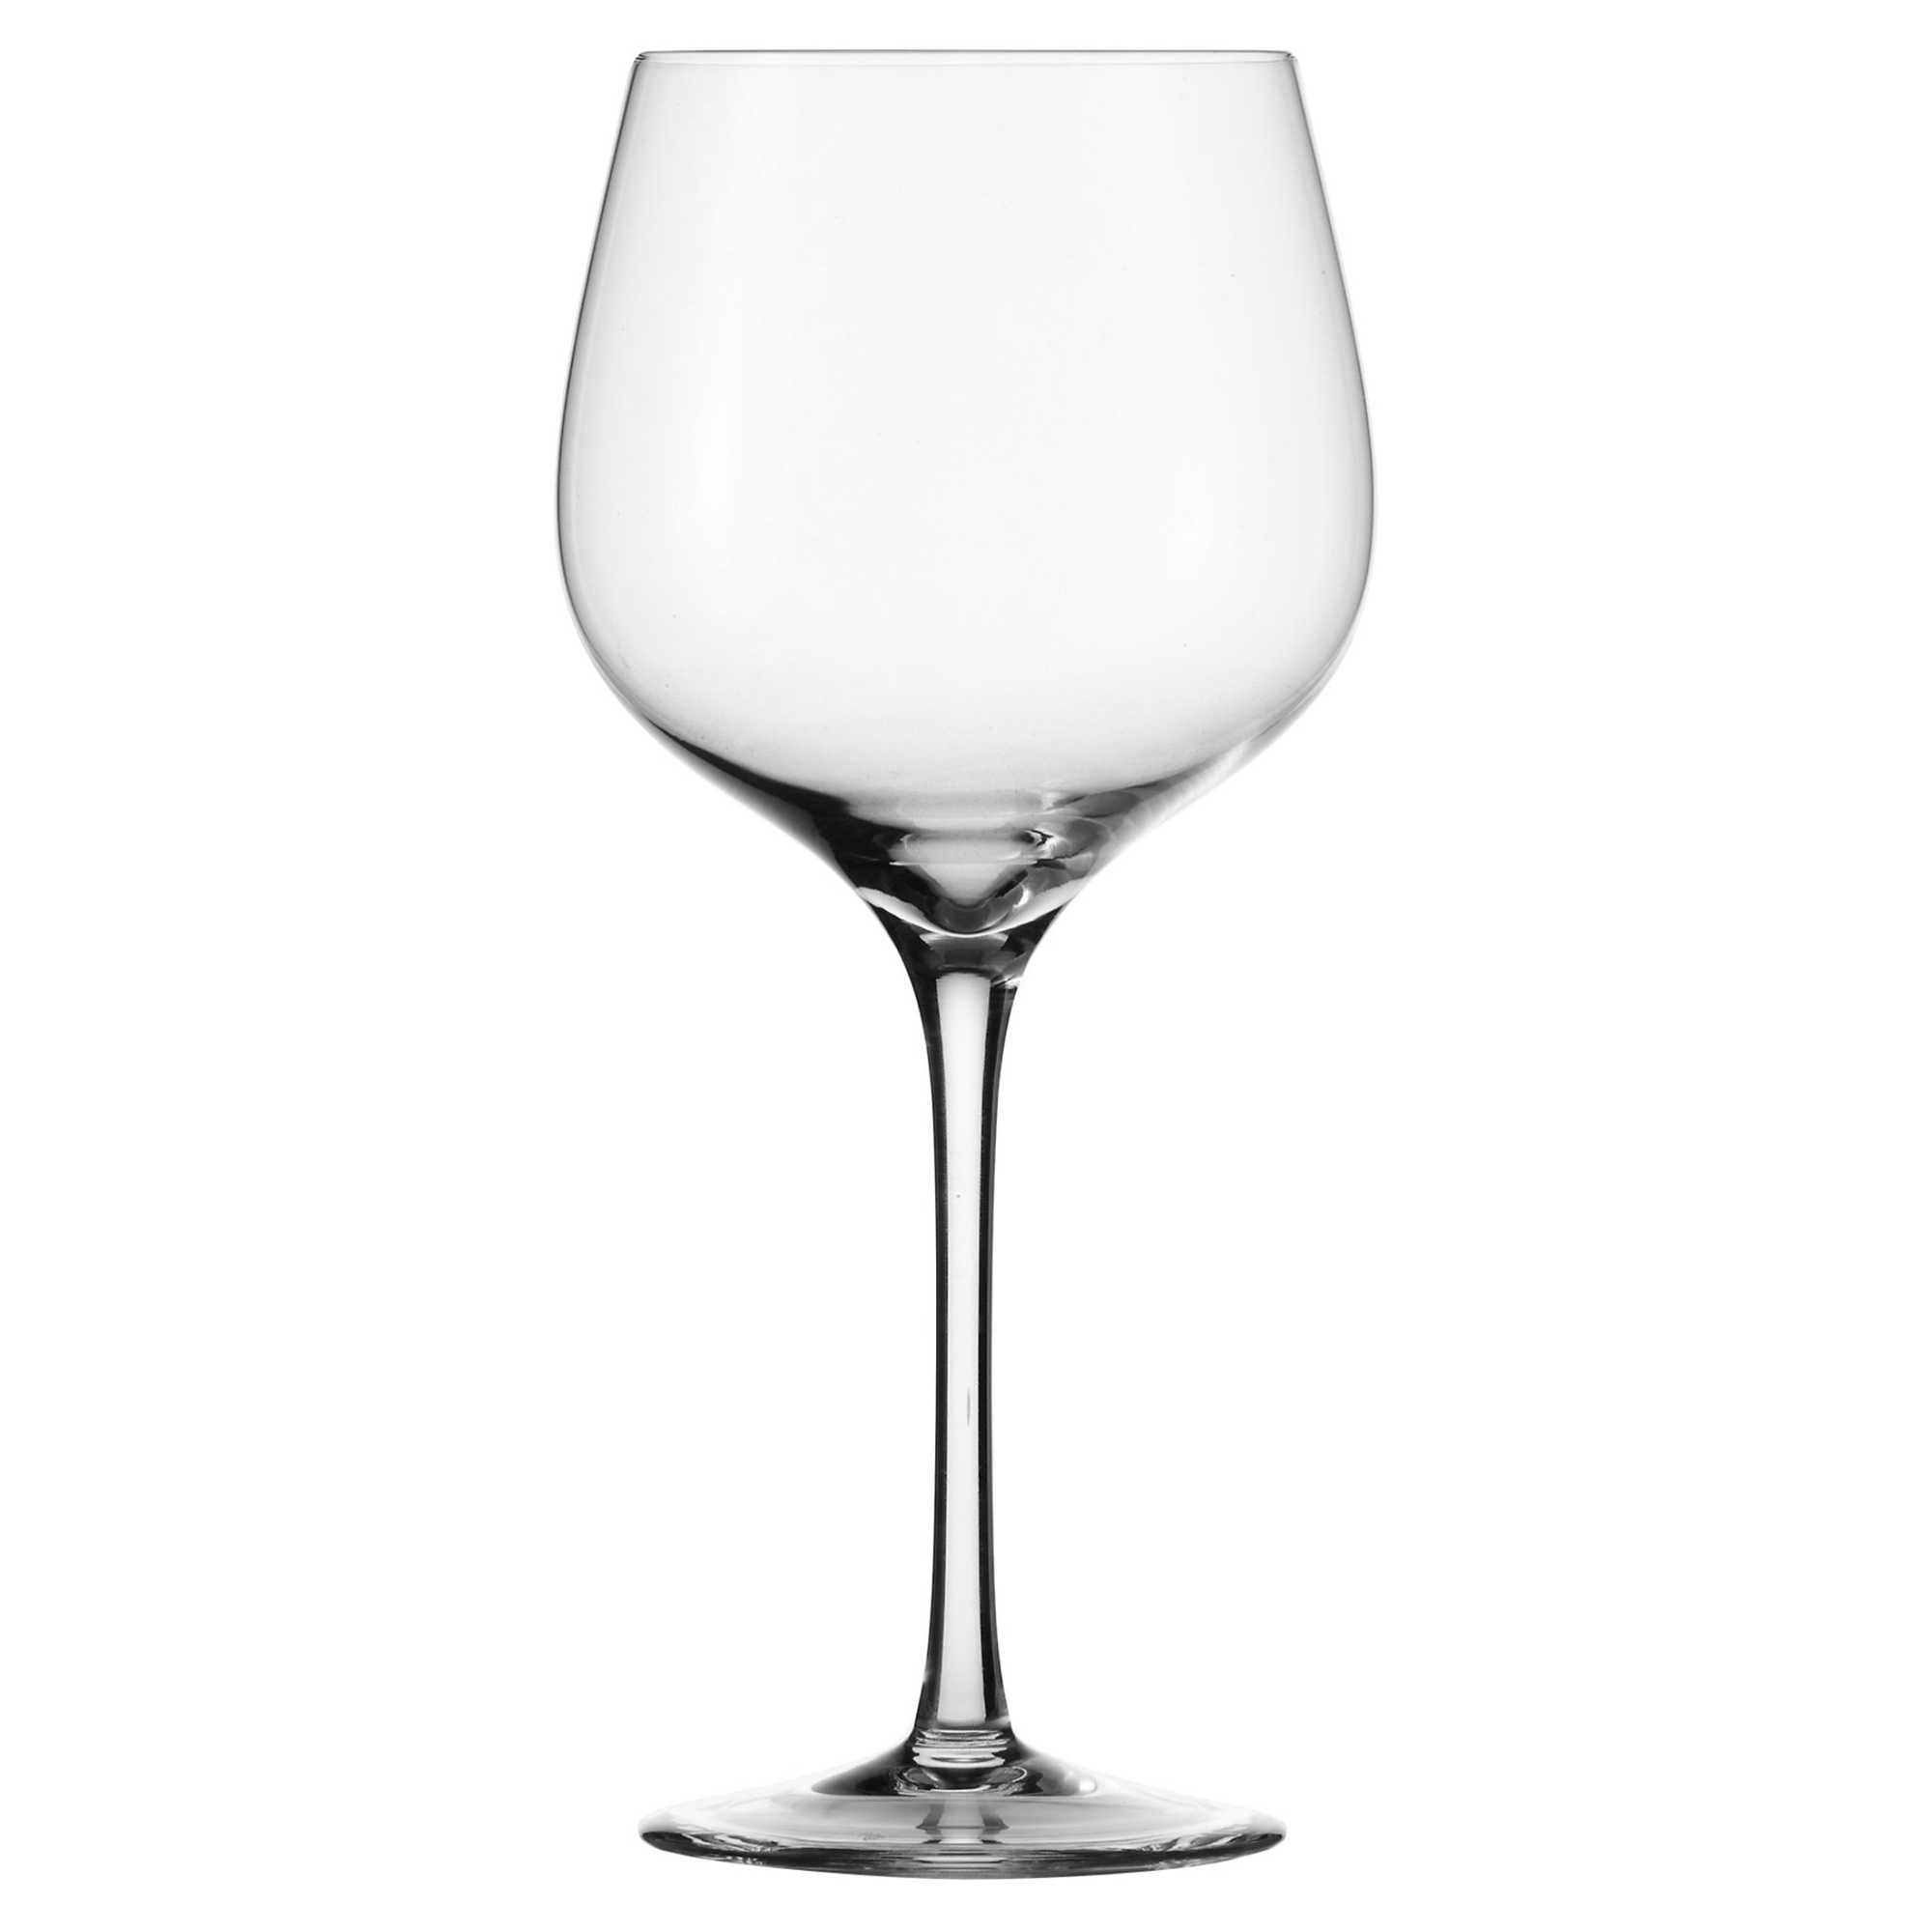 Eisch Superior Burgundy Glass